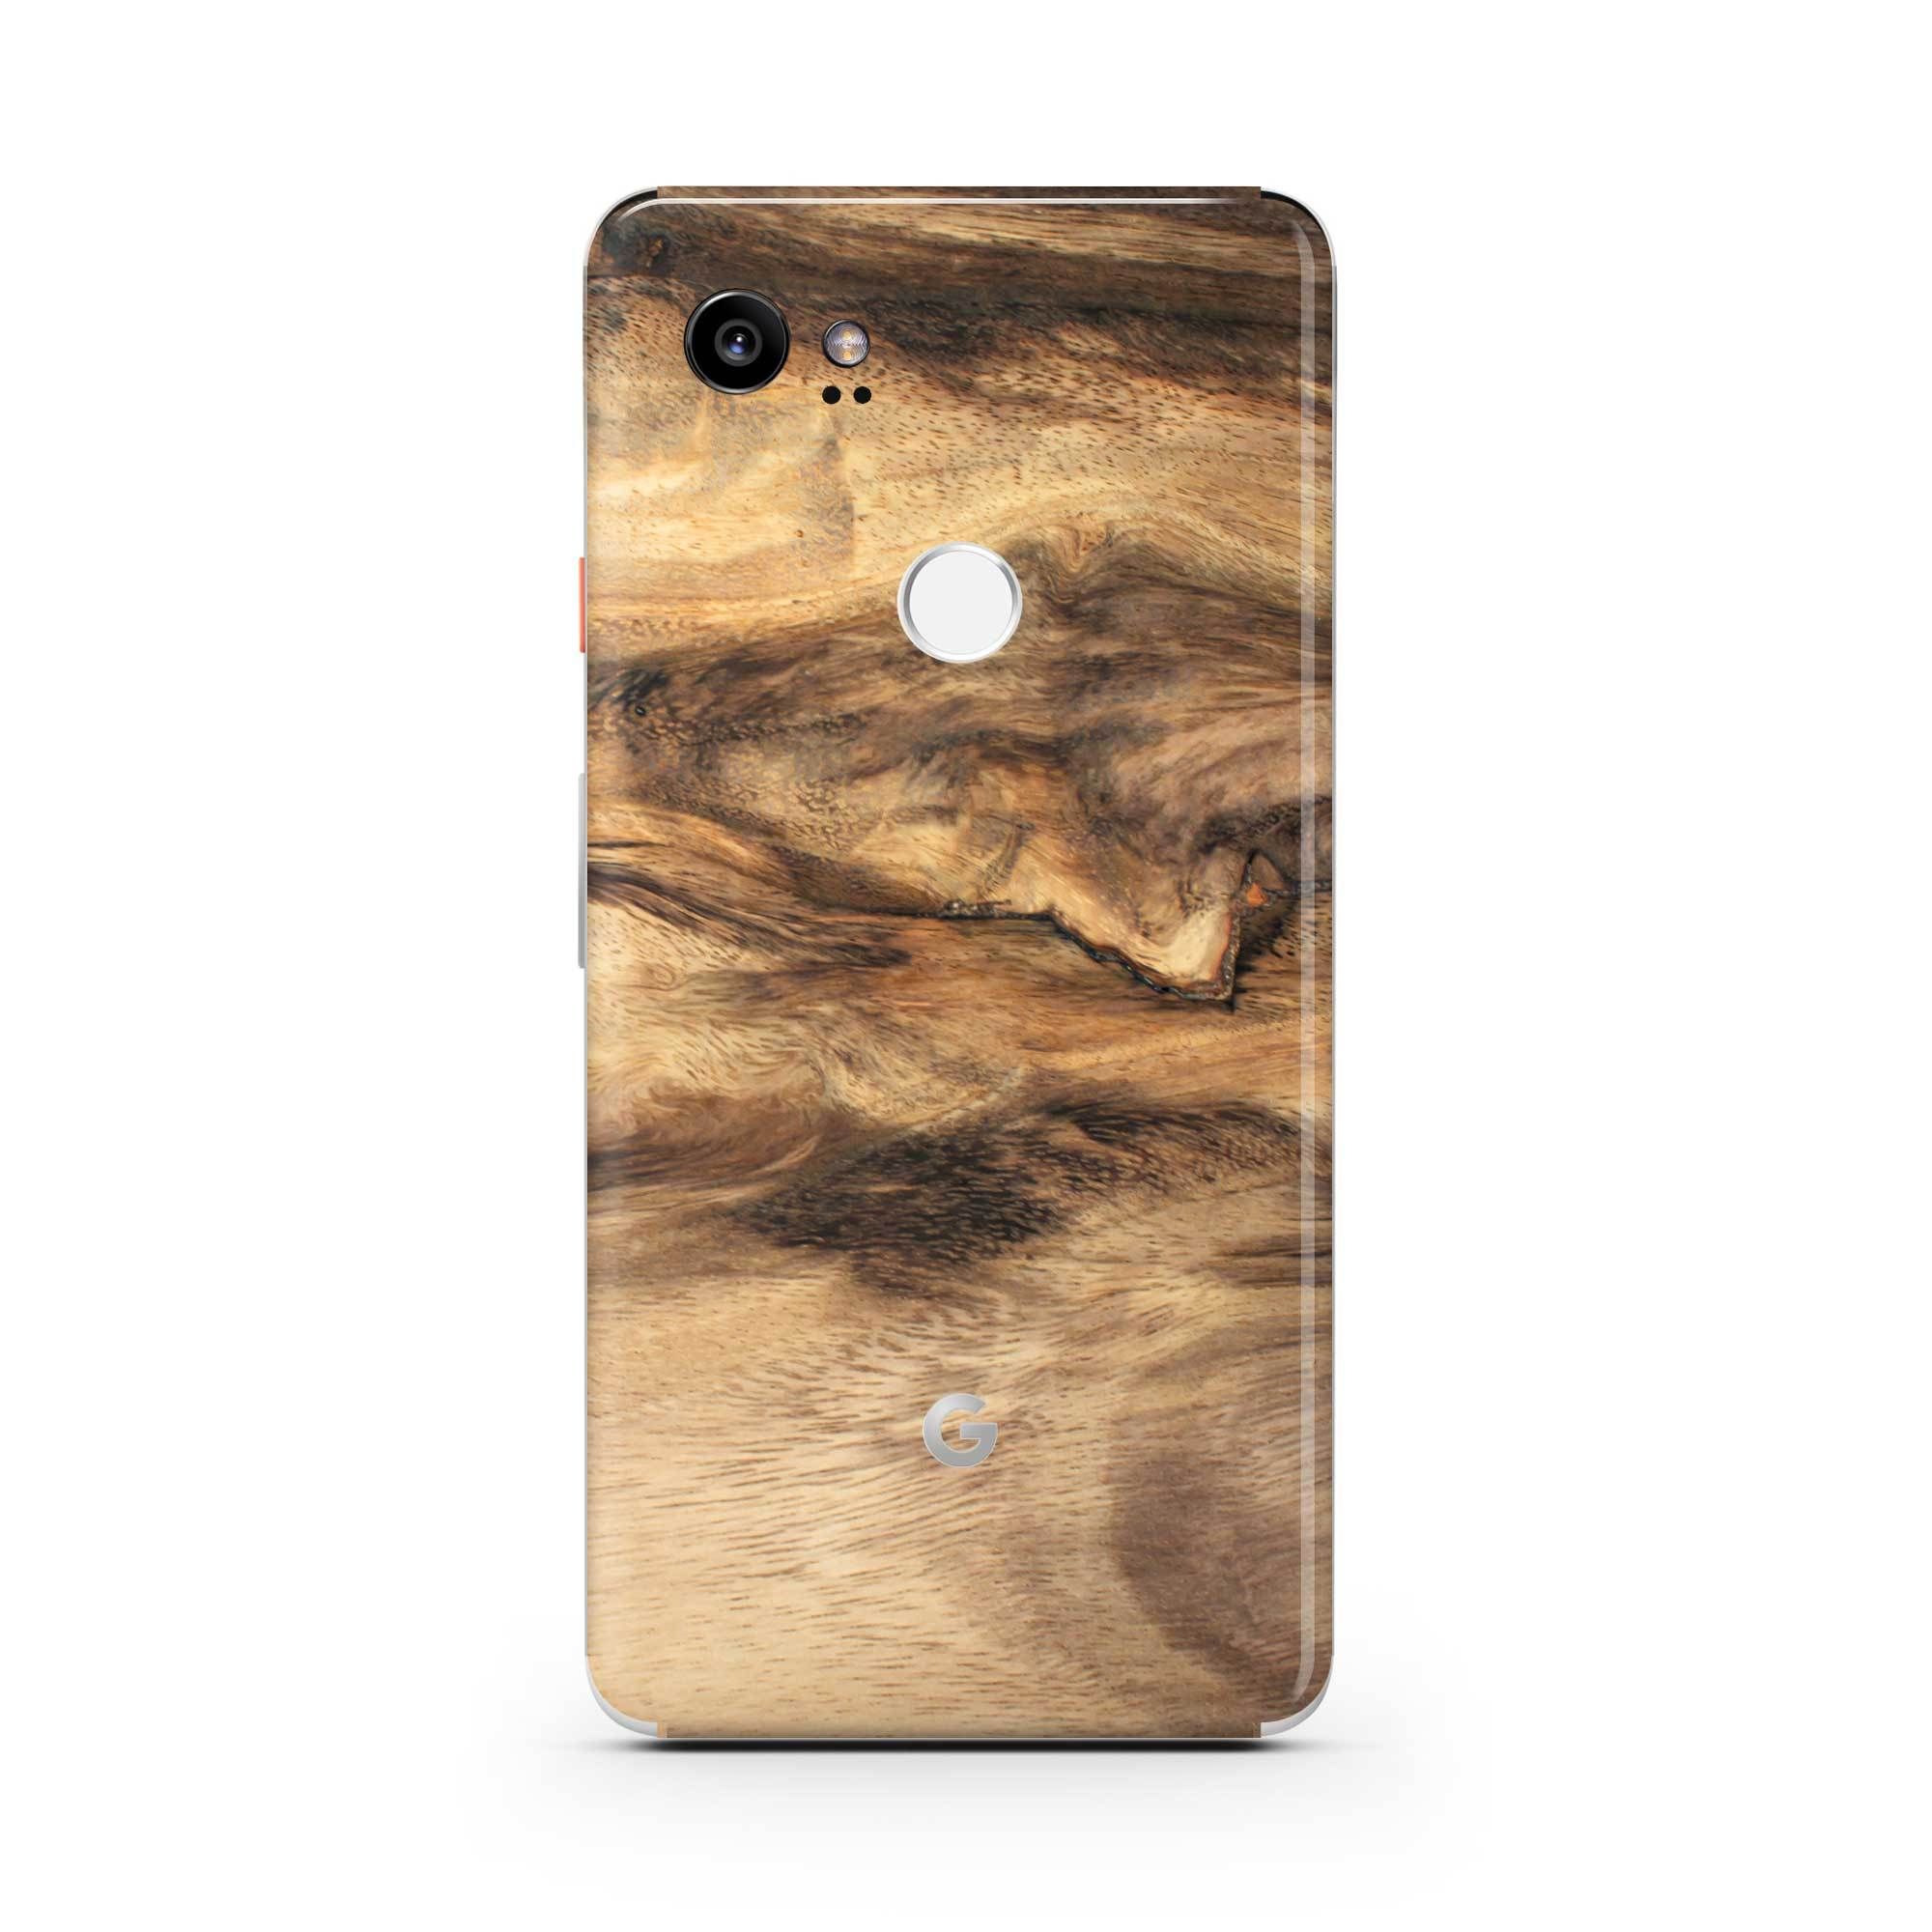 Wood Pixel 3 XL Skin + Case